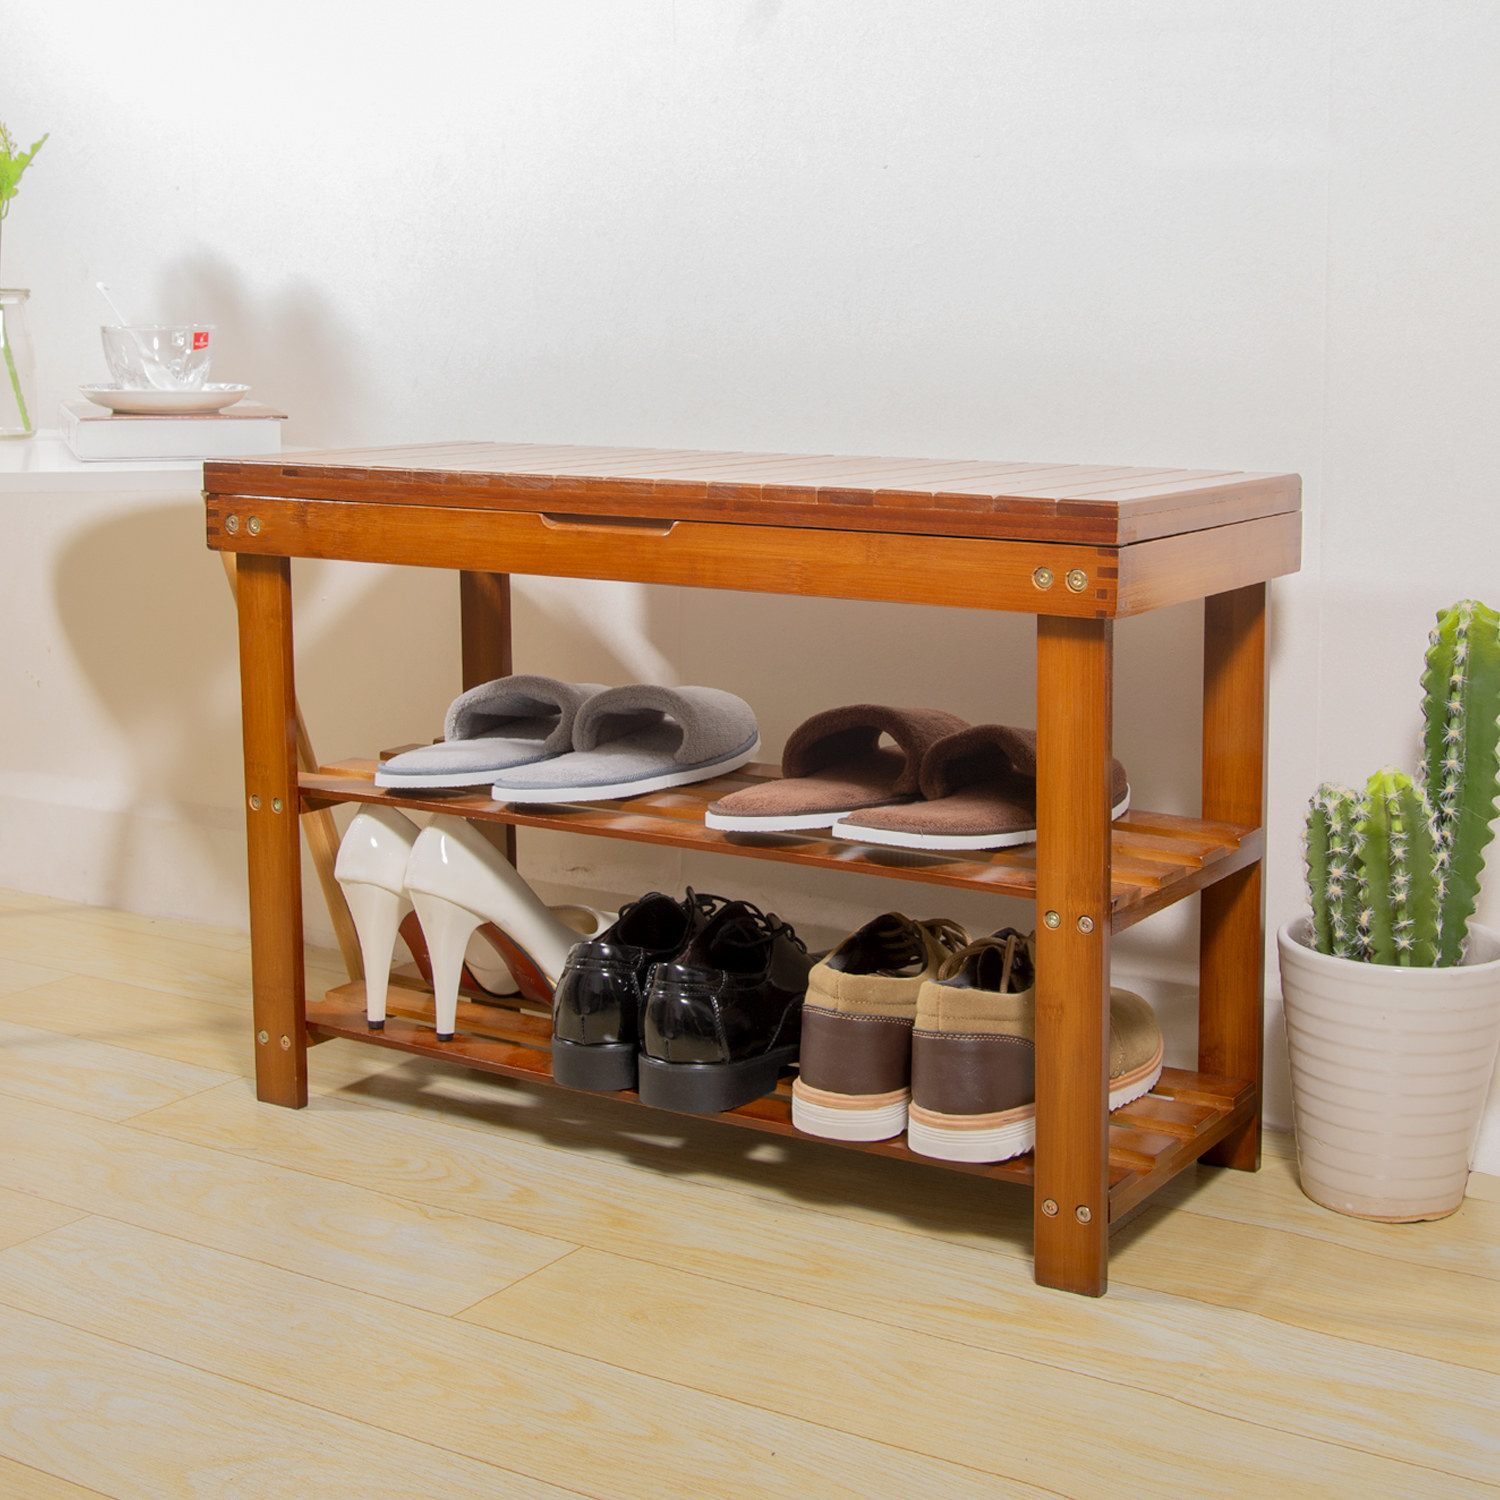 shoe rack in hallway with multiple pairs of shoes